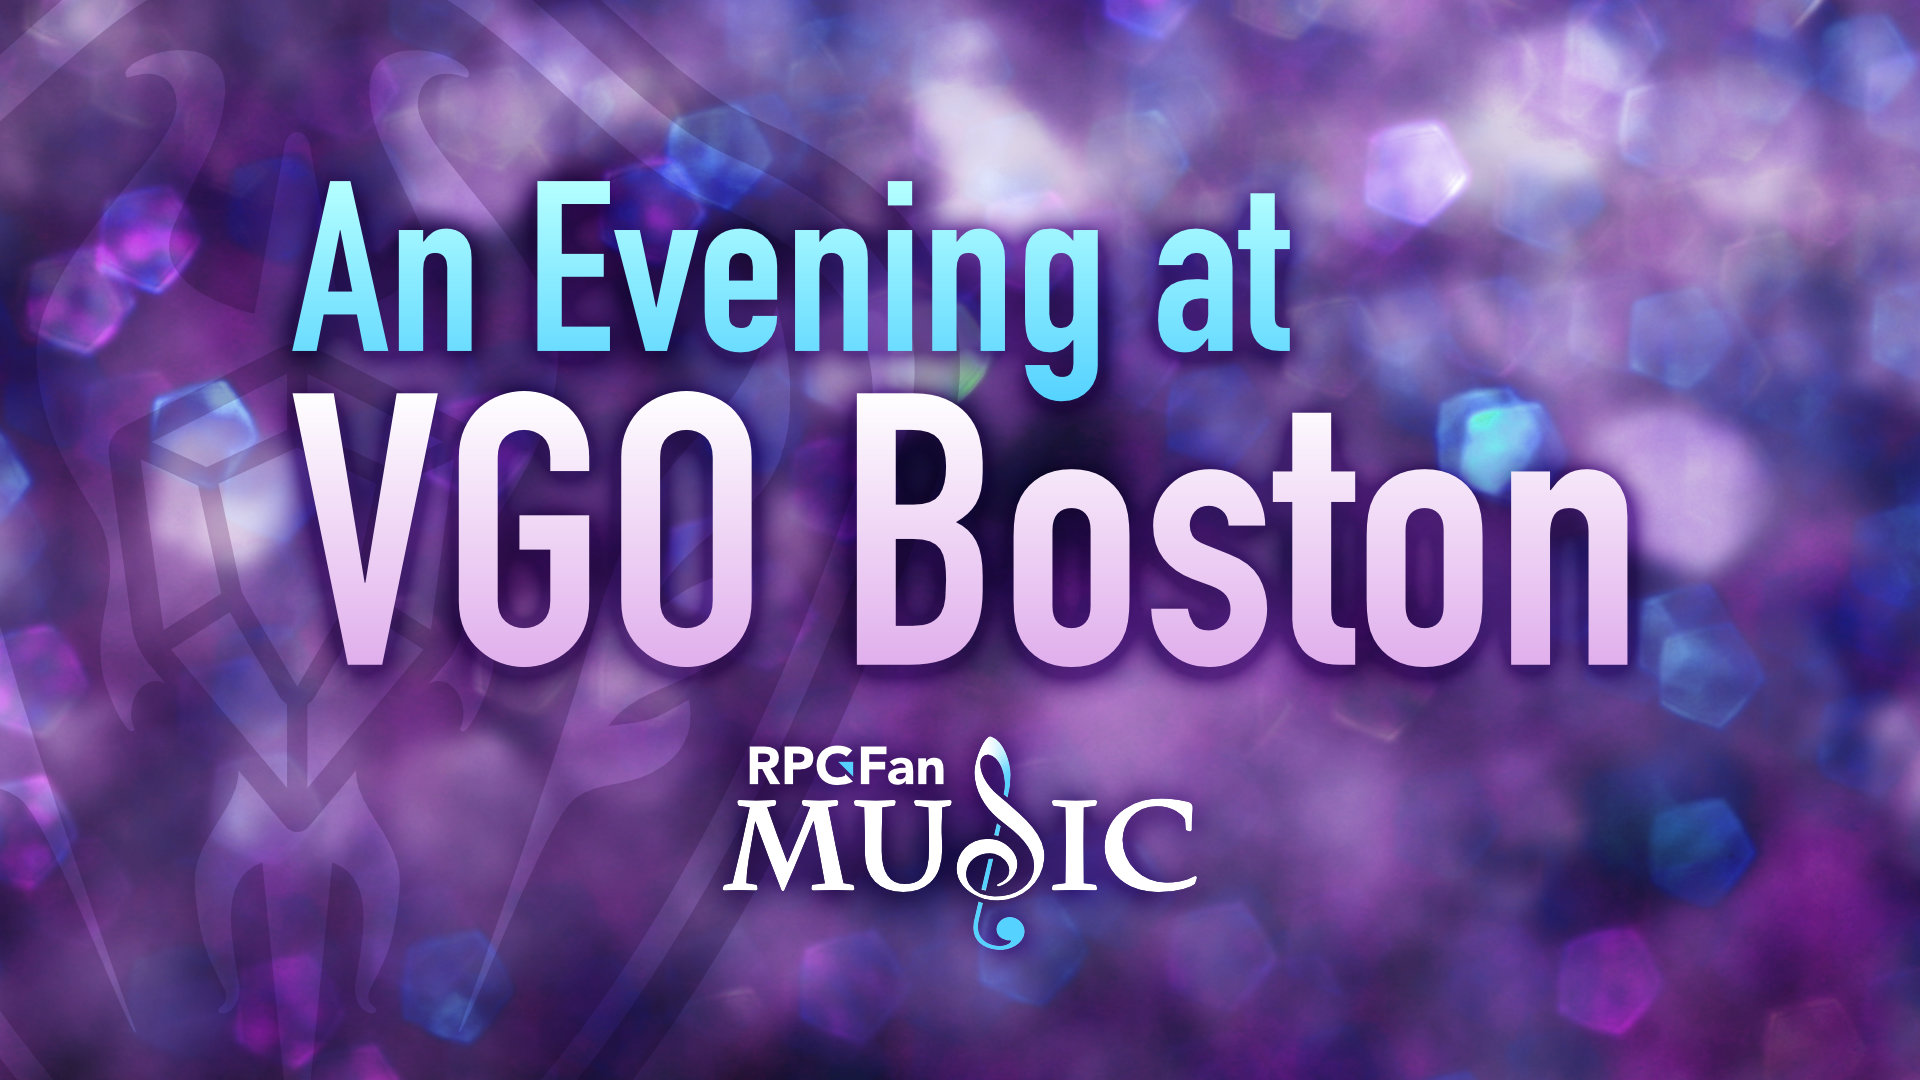 An Evening at VGO Boston Featured